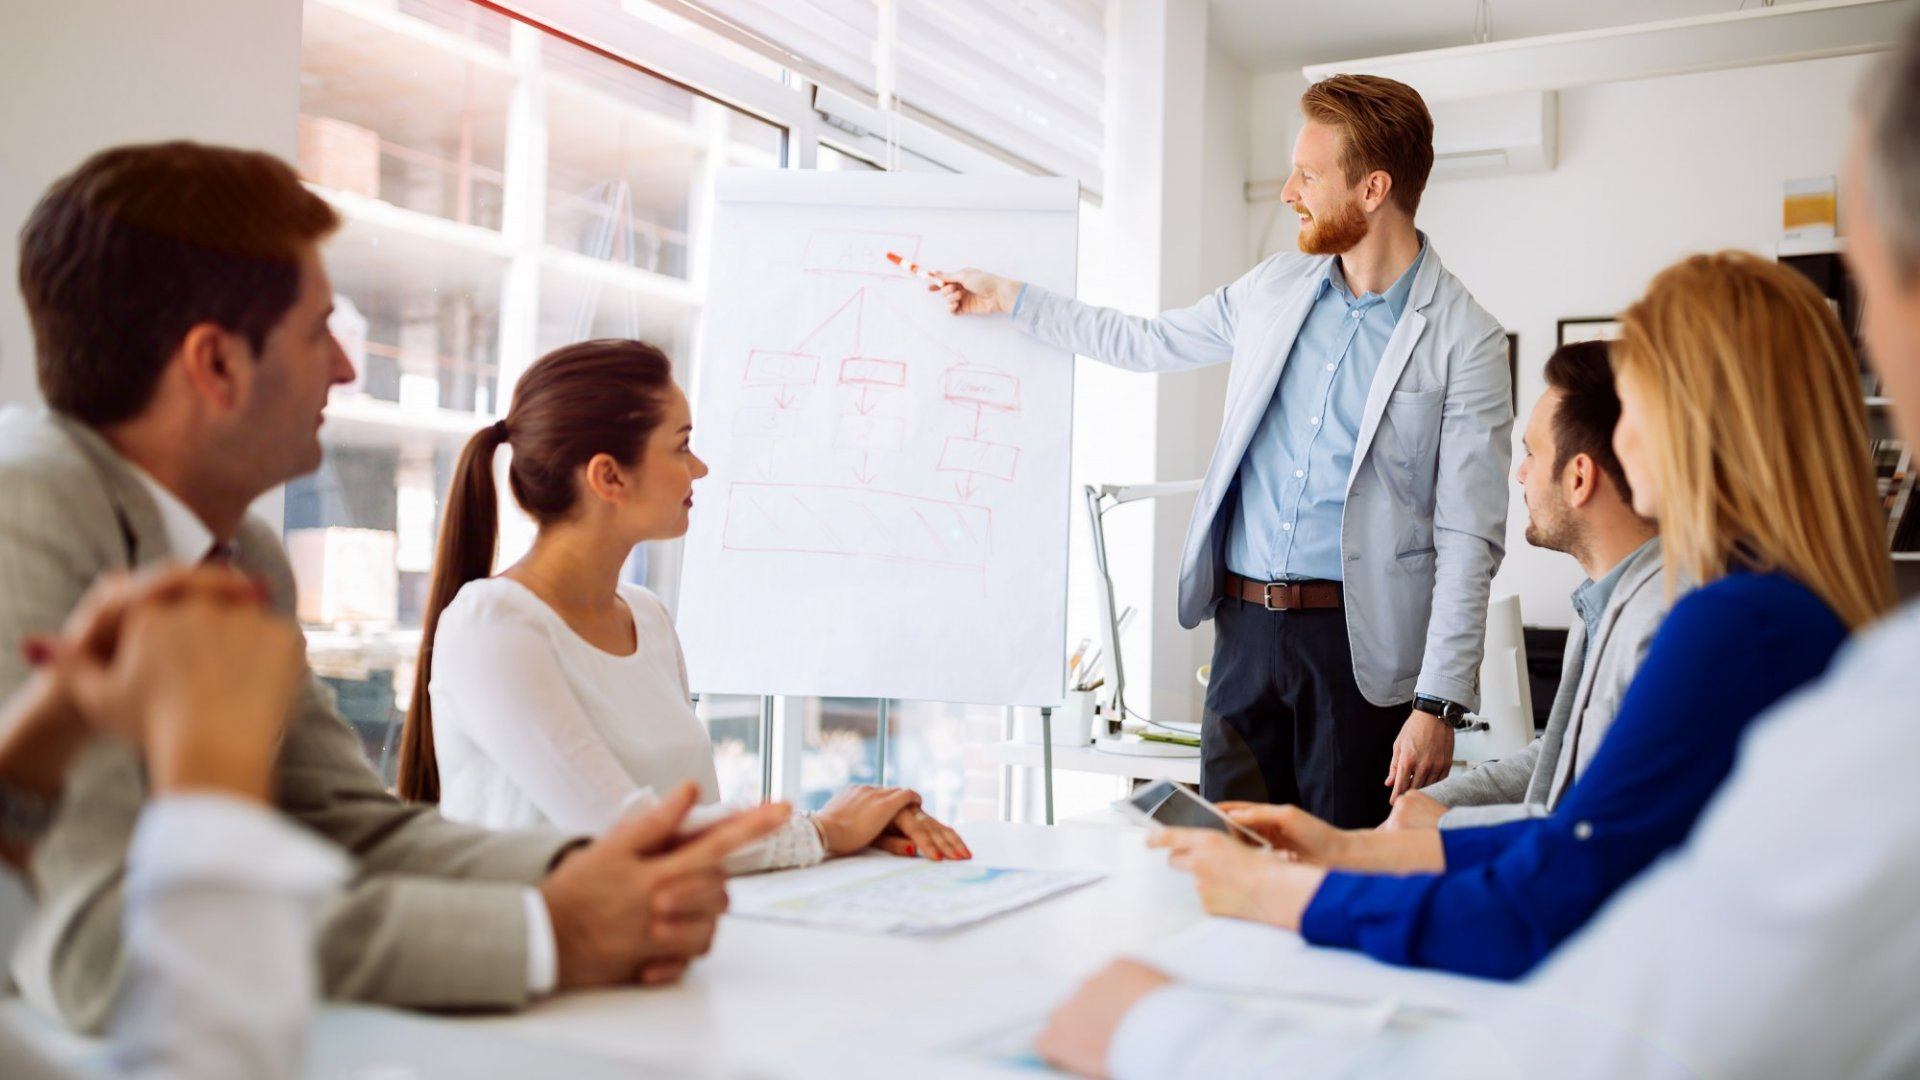 5 Ways to Motivate Employees in Training